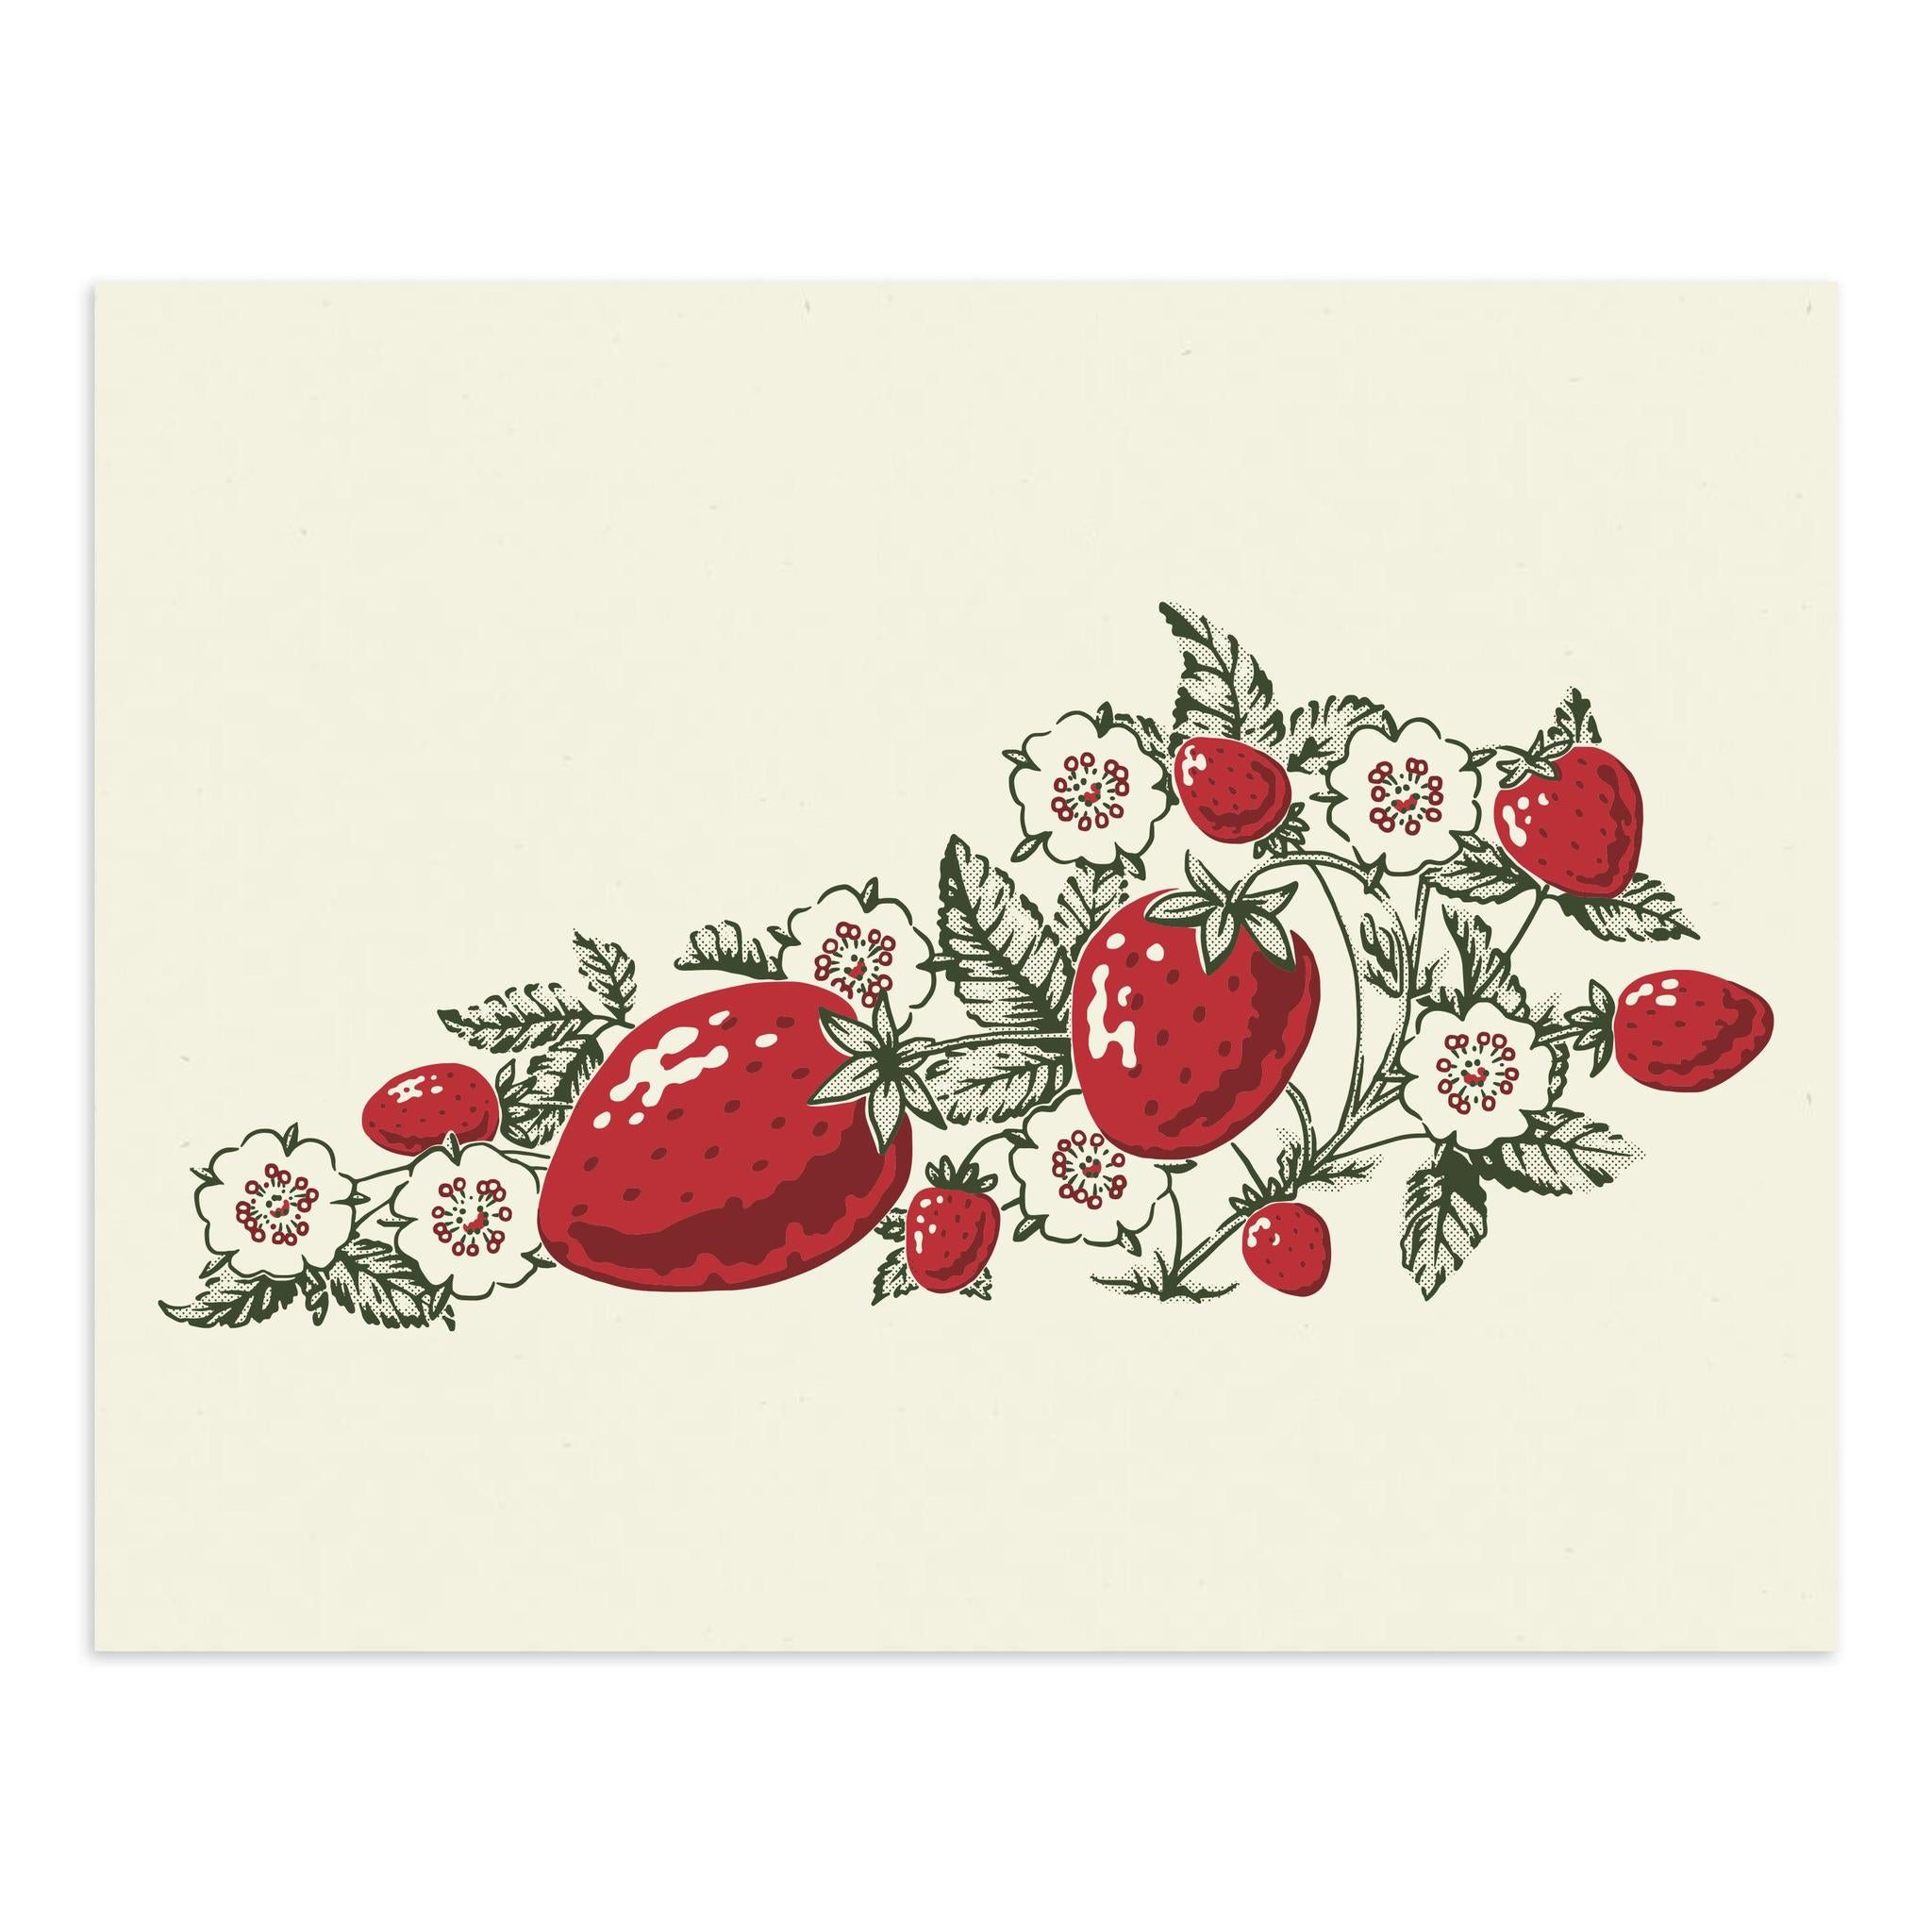 Strawberry KY Print-Prints-KY for KY Store